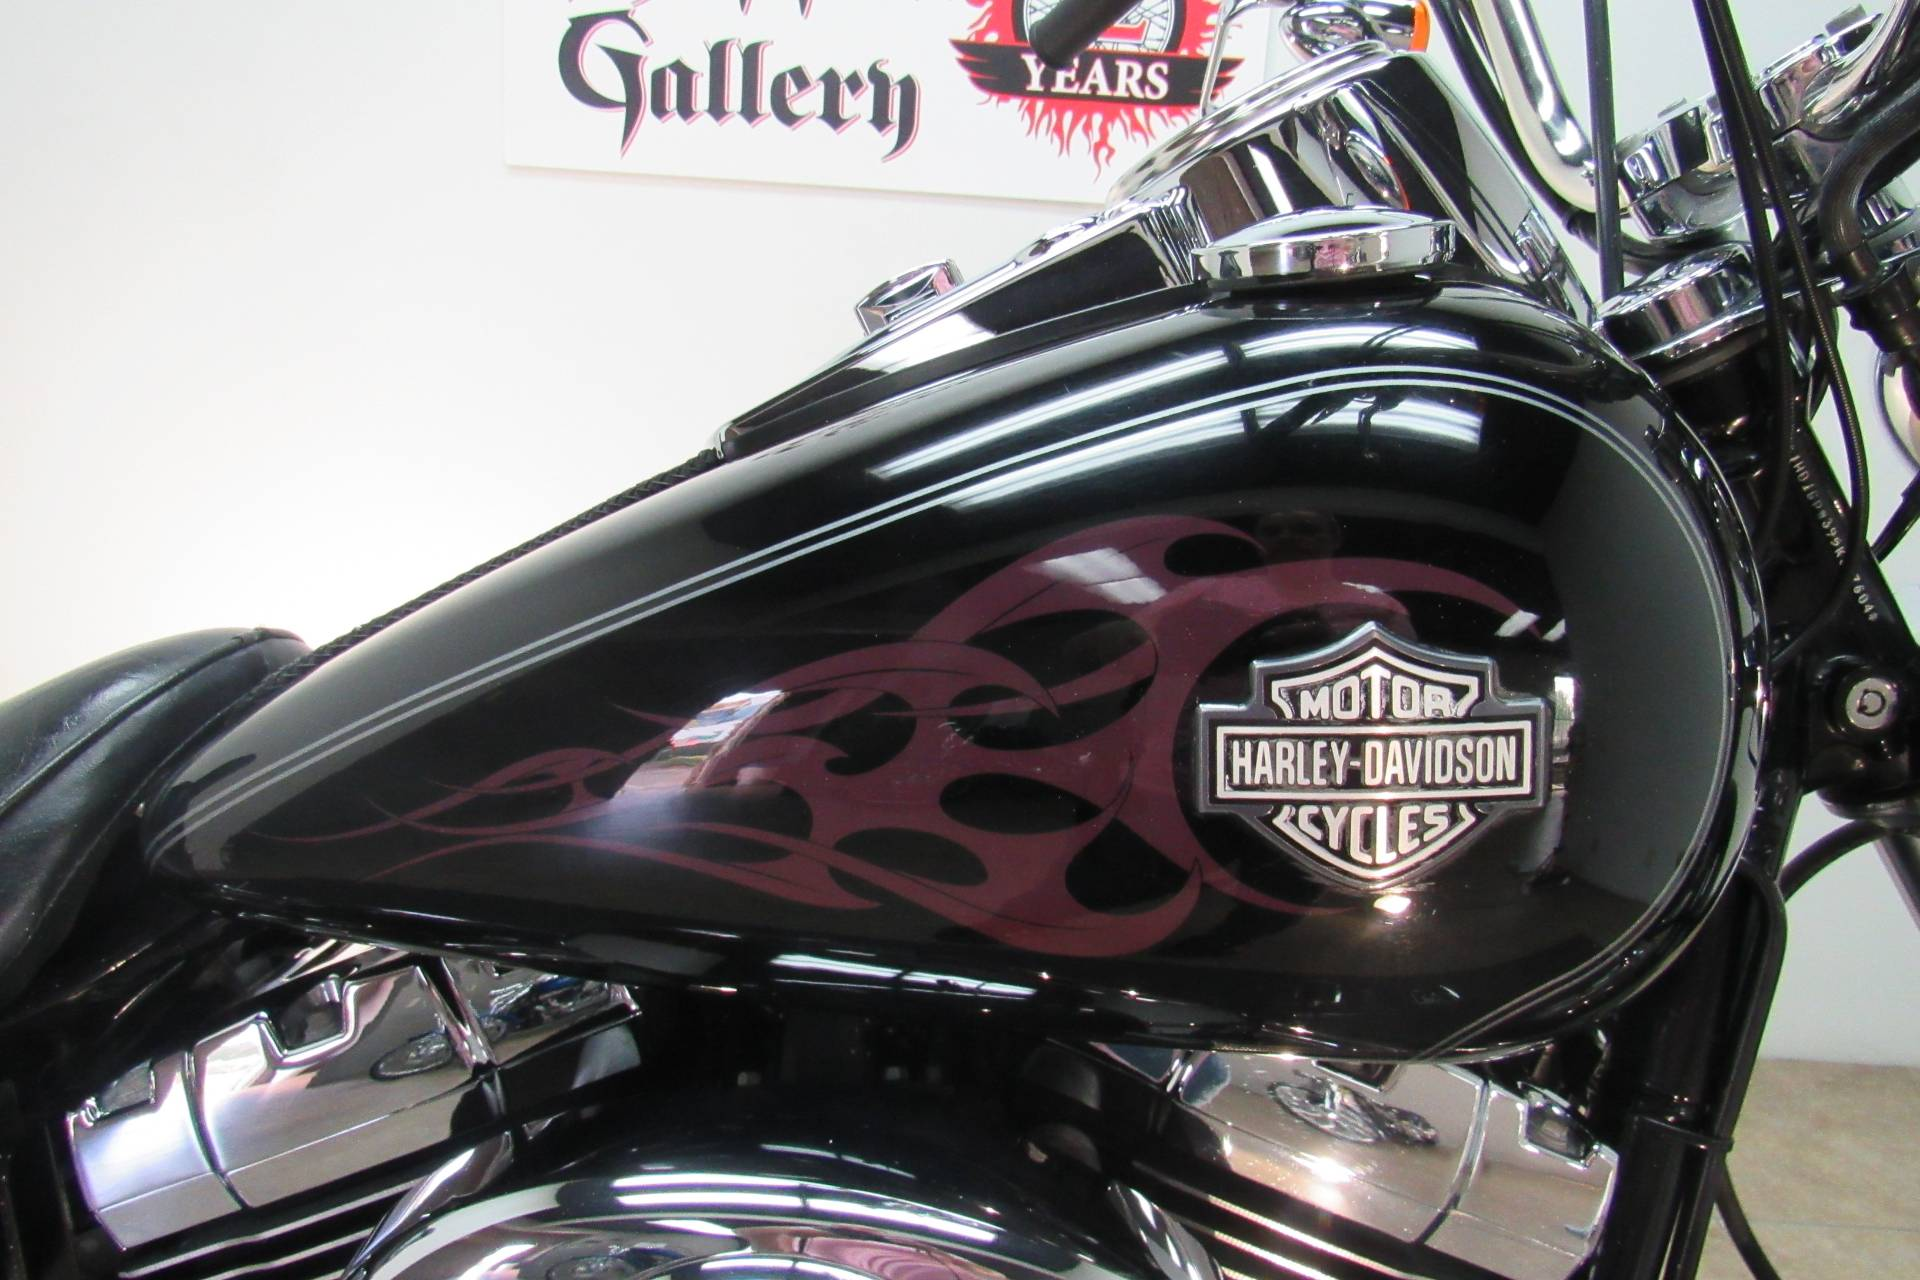 2005 Harley-Davidson FXDWG/FXDWGI Dyna Wide Glide® in Temecula, California - Photo 11